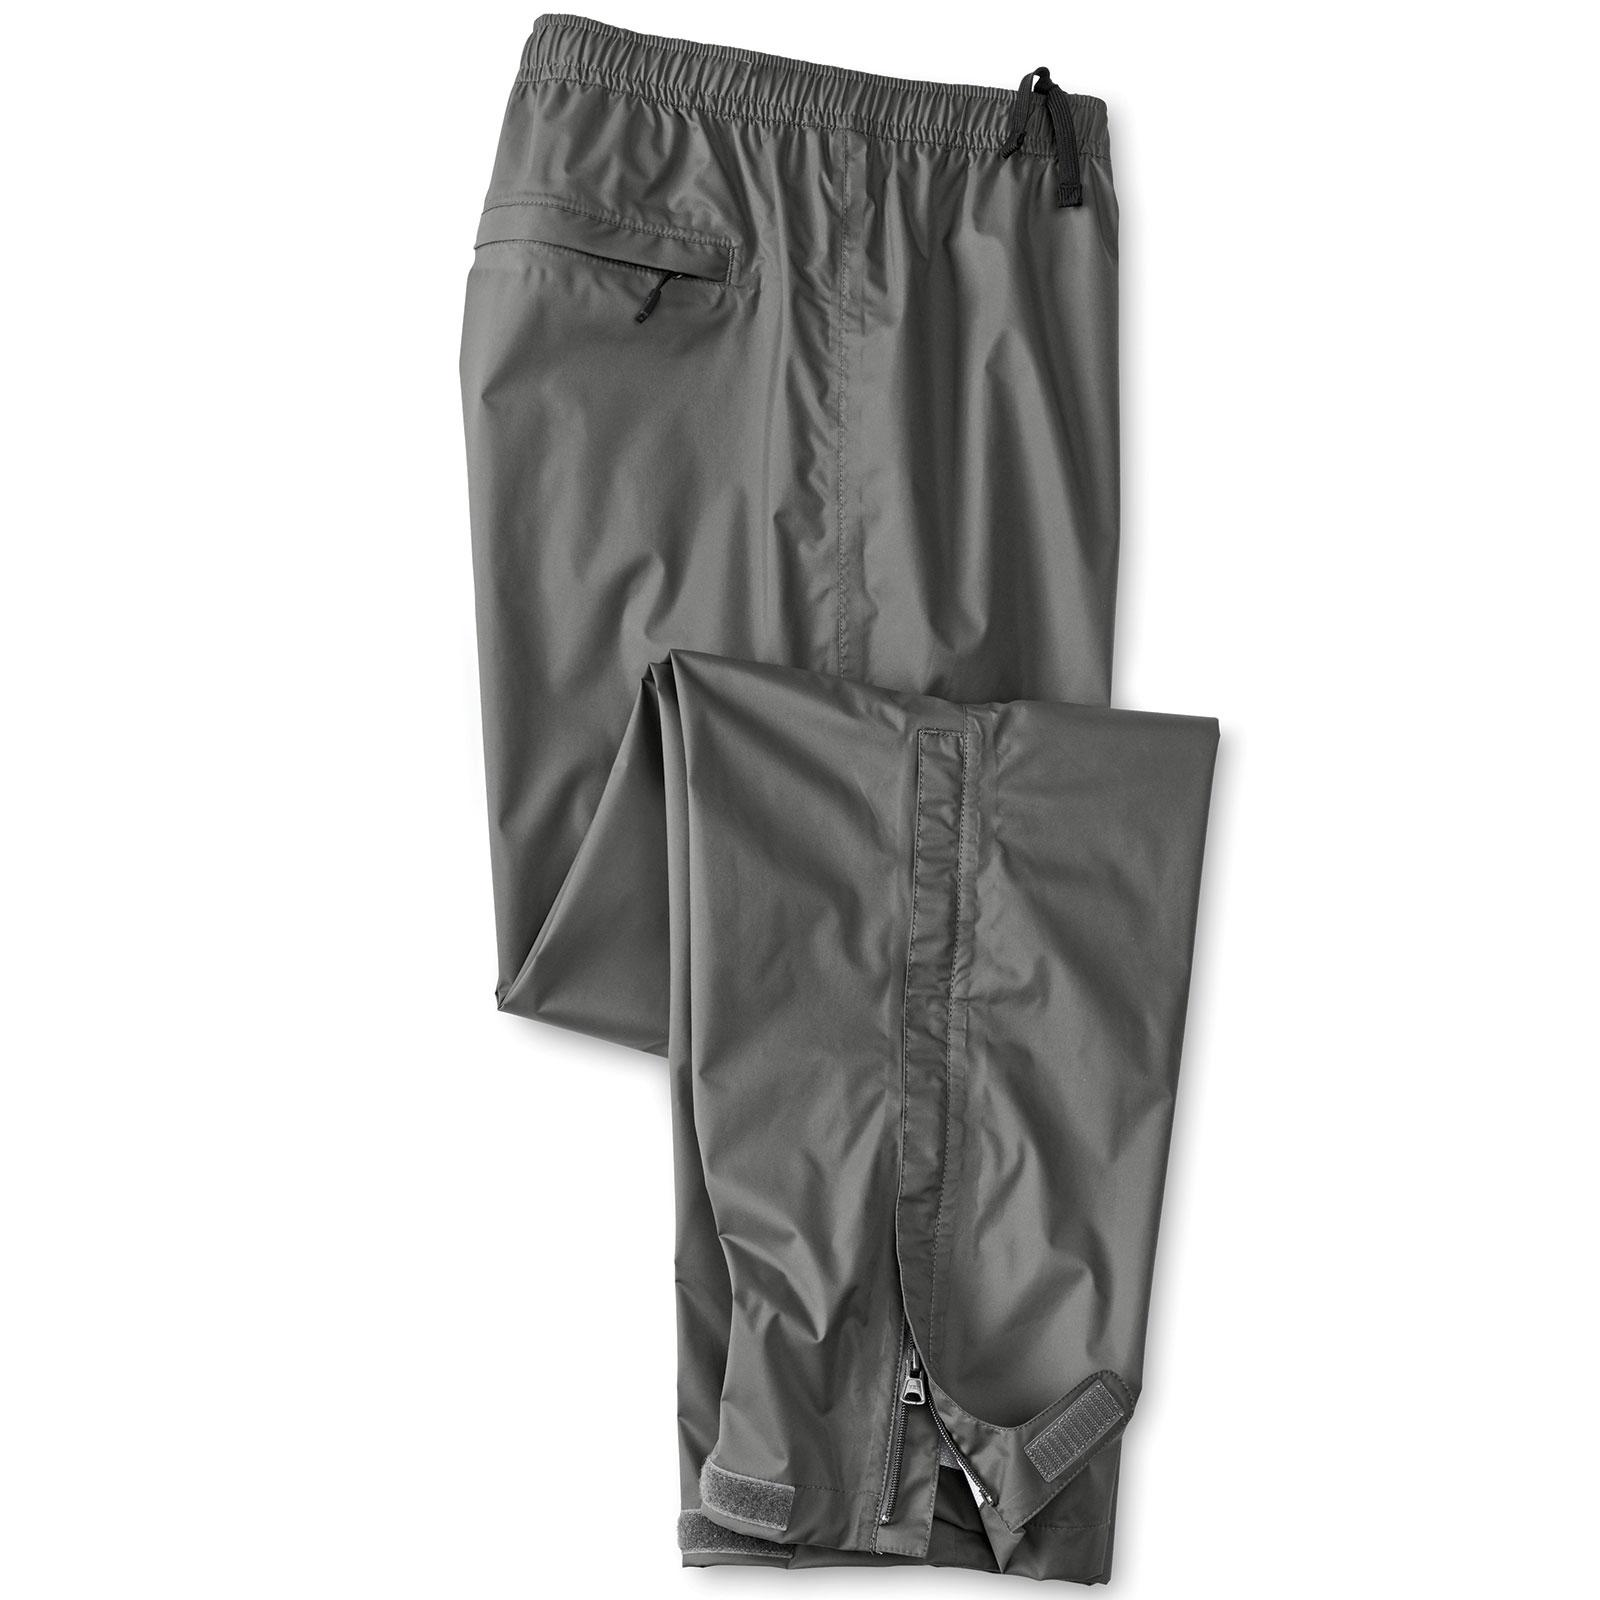 Orvis Encounter Rain Pants